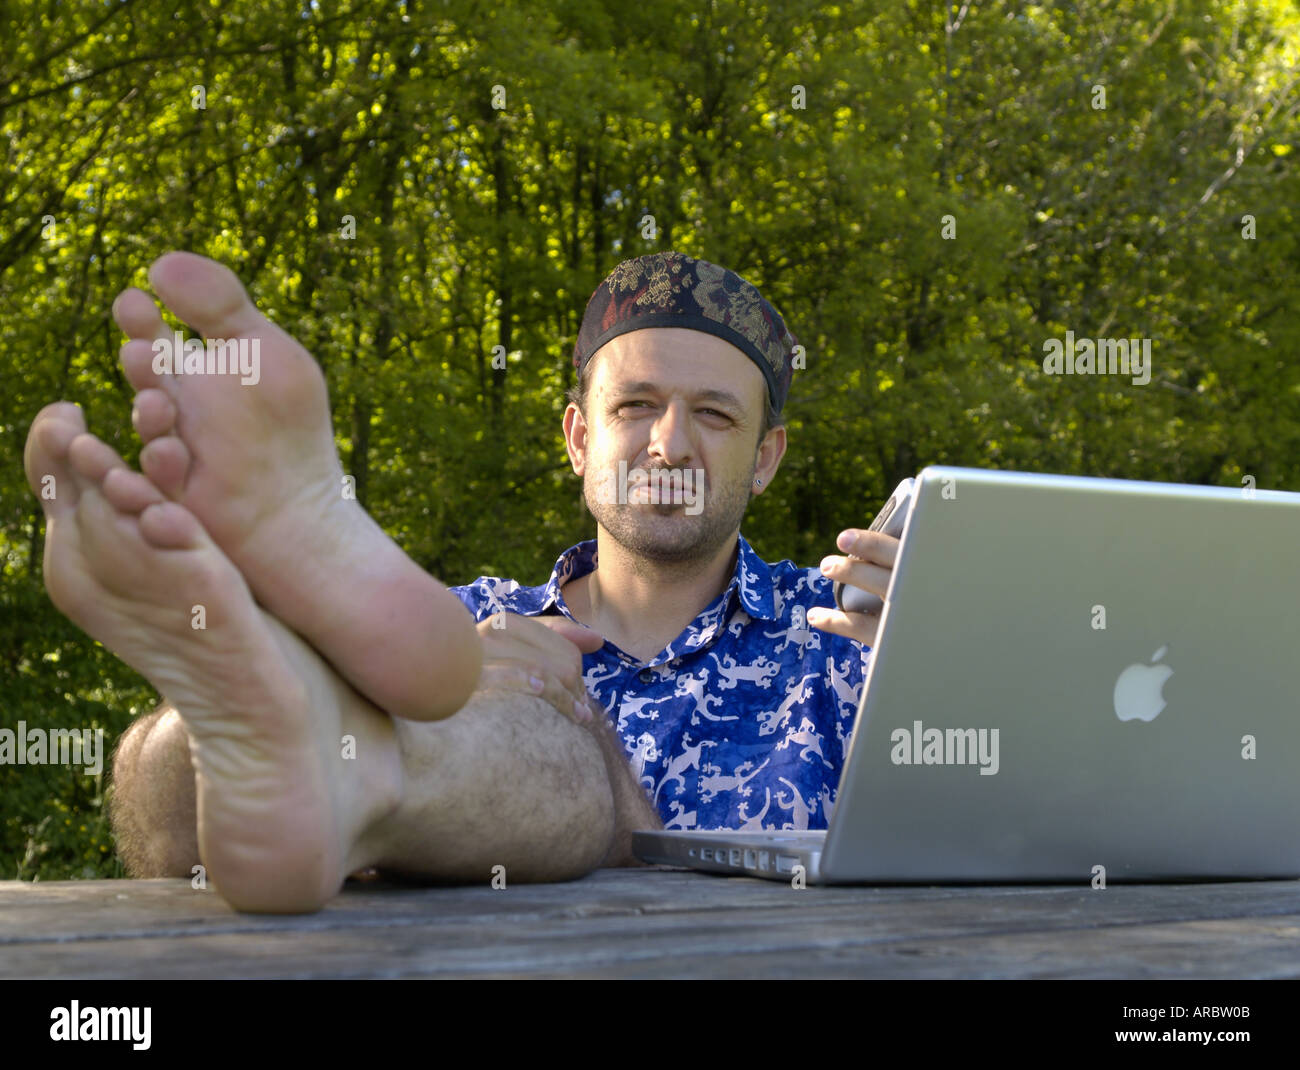 Man with blue shirt and notebook outdoors Stock Photo